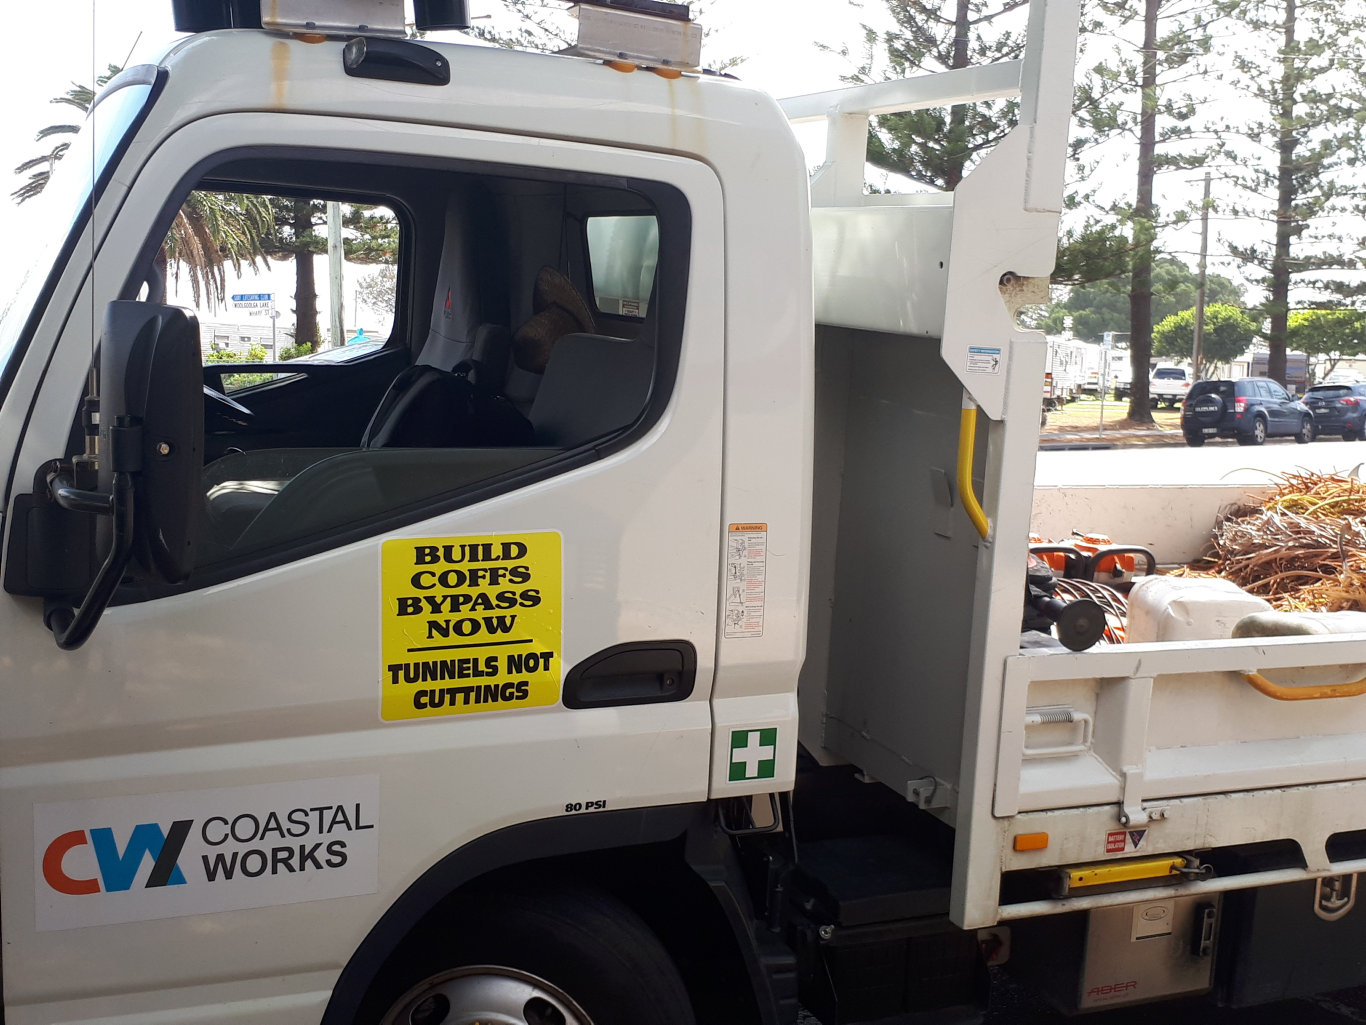 Coffs Harbour City Council's vehicle fleet has been fitted with stickers calling for tunnels on the Coffs bypass not cuttings and landbridges.